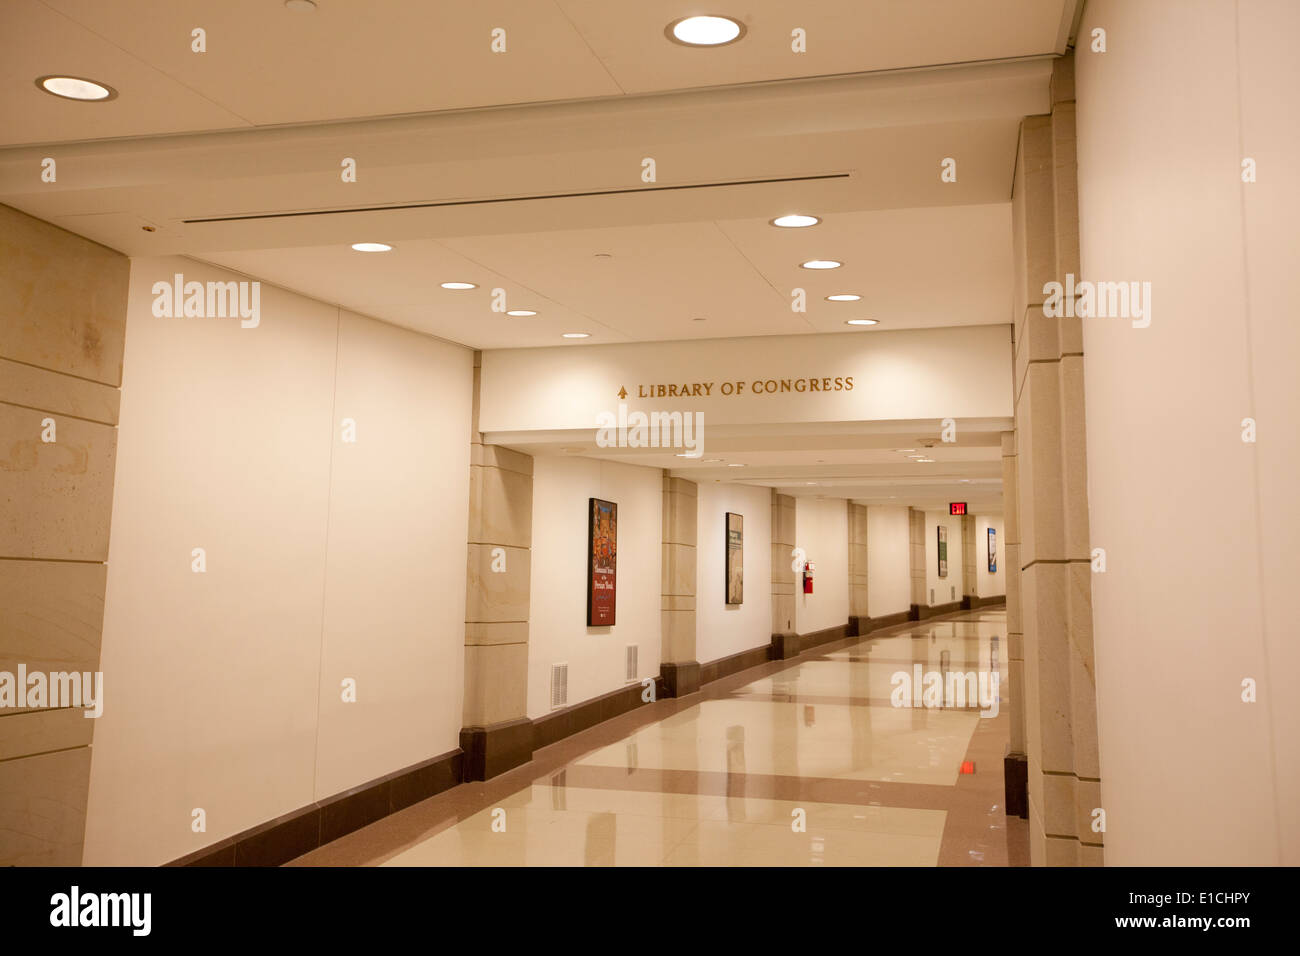 WASHINGTON D.C. - MAY 23 2014: The underground tunnel connecting the U.S. Capitol Building to the Library of Congress. - Stock Image